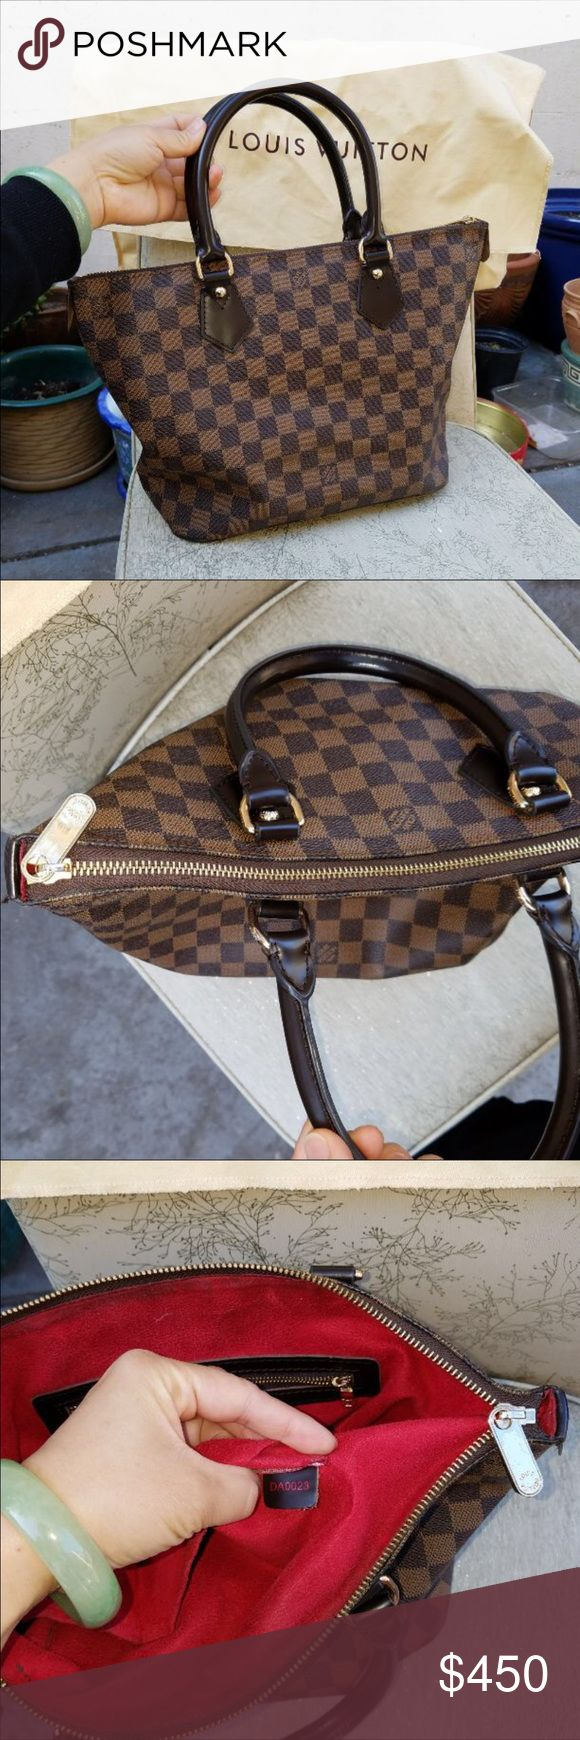 Authentic Louis vuitton purse Authentic Louis Vuitton purse outside is in excellent condition and inside has a couple dark spots.  Overall a great bag. Looking to trade!  Cannot locate dustbag think it was taken off to goodwill by accident! Louis Vuitton Bags Shoulder Bags